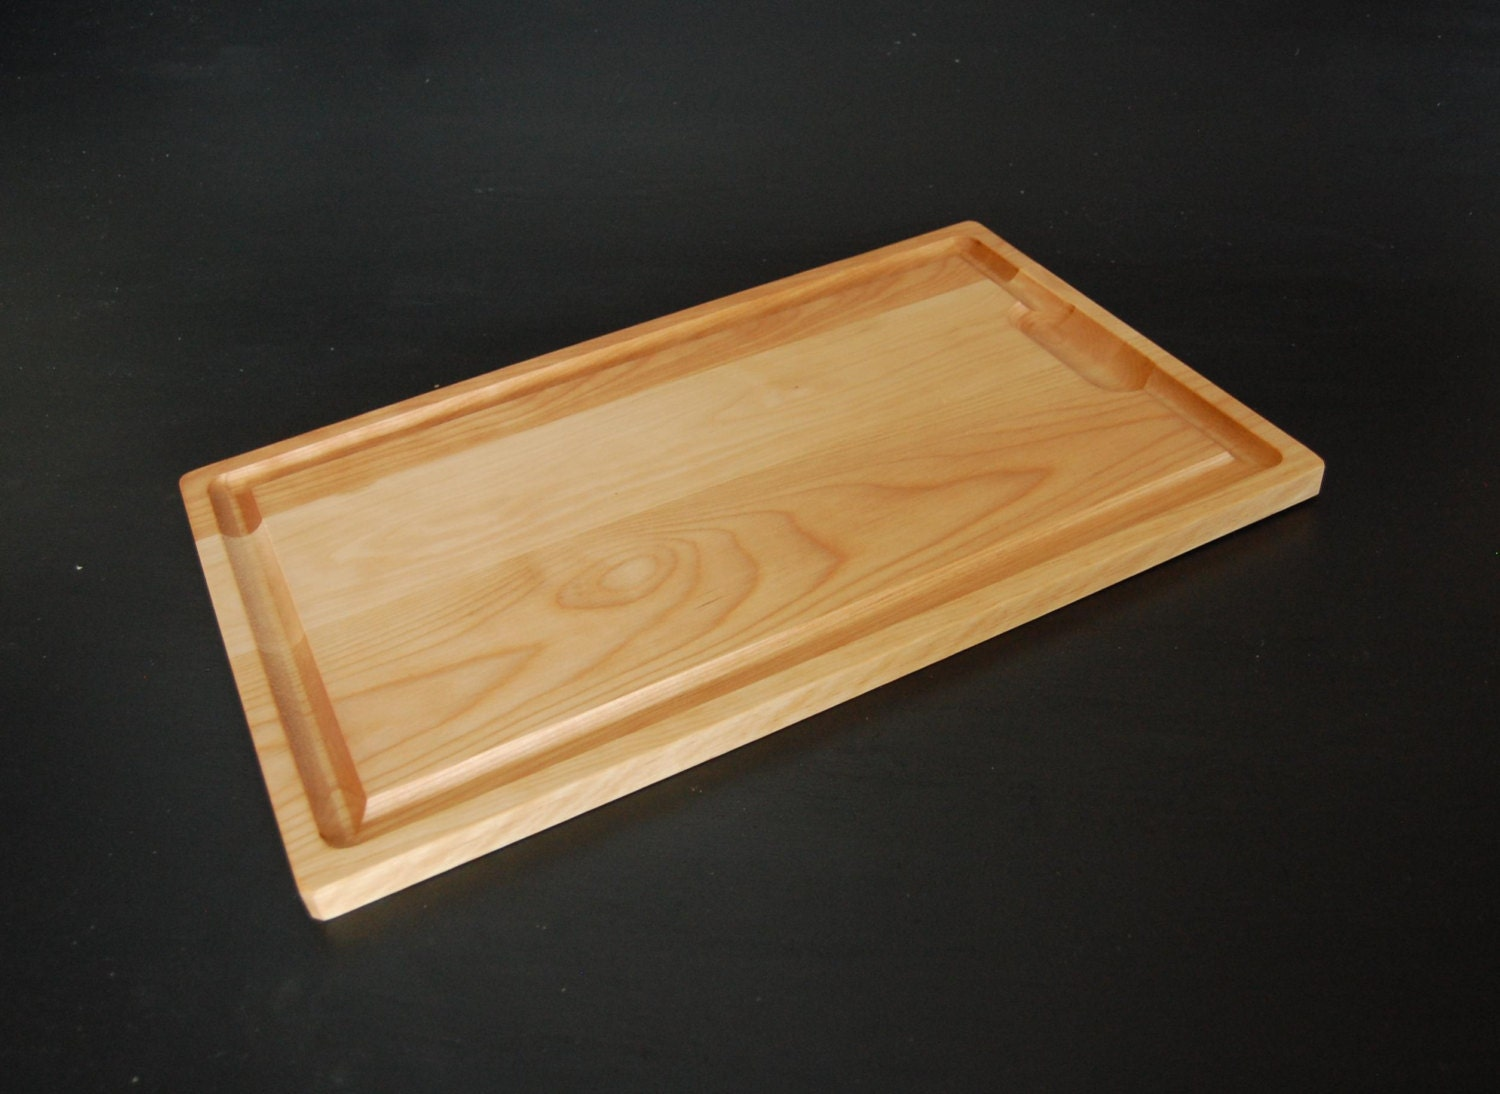 yellow birch wooden cutting board handmade in vermont wood. Black Bedroom Furniture Sets. Home Design Ideas